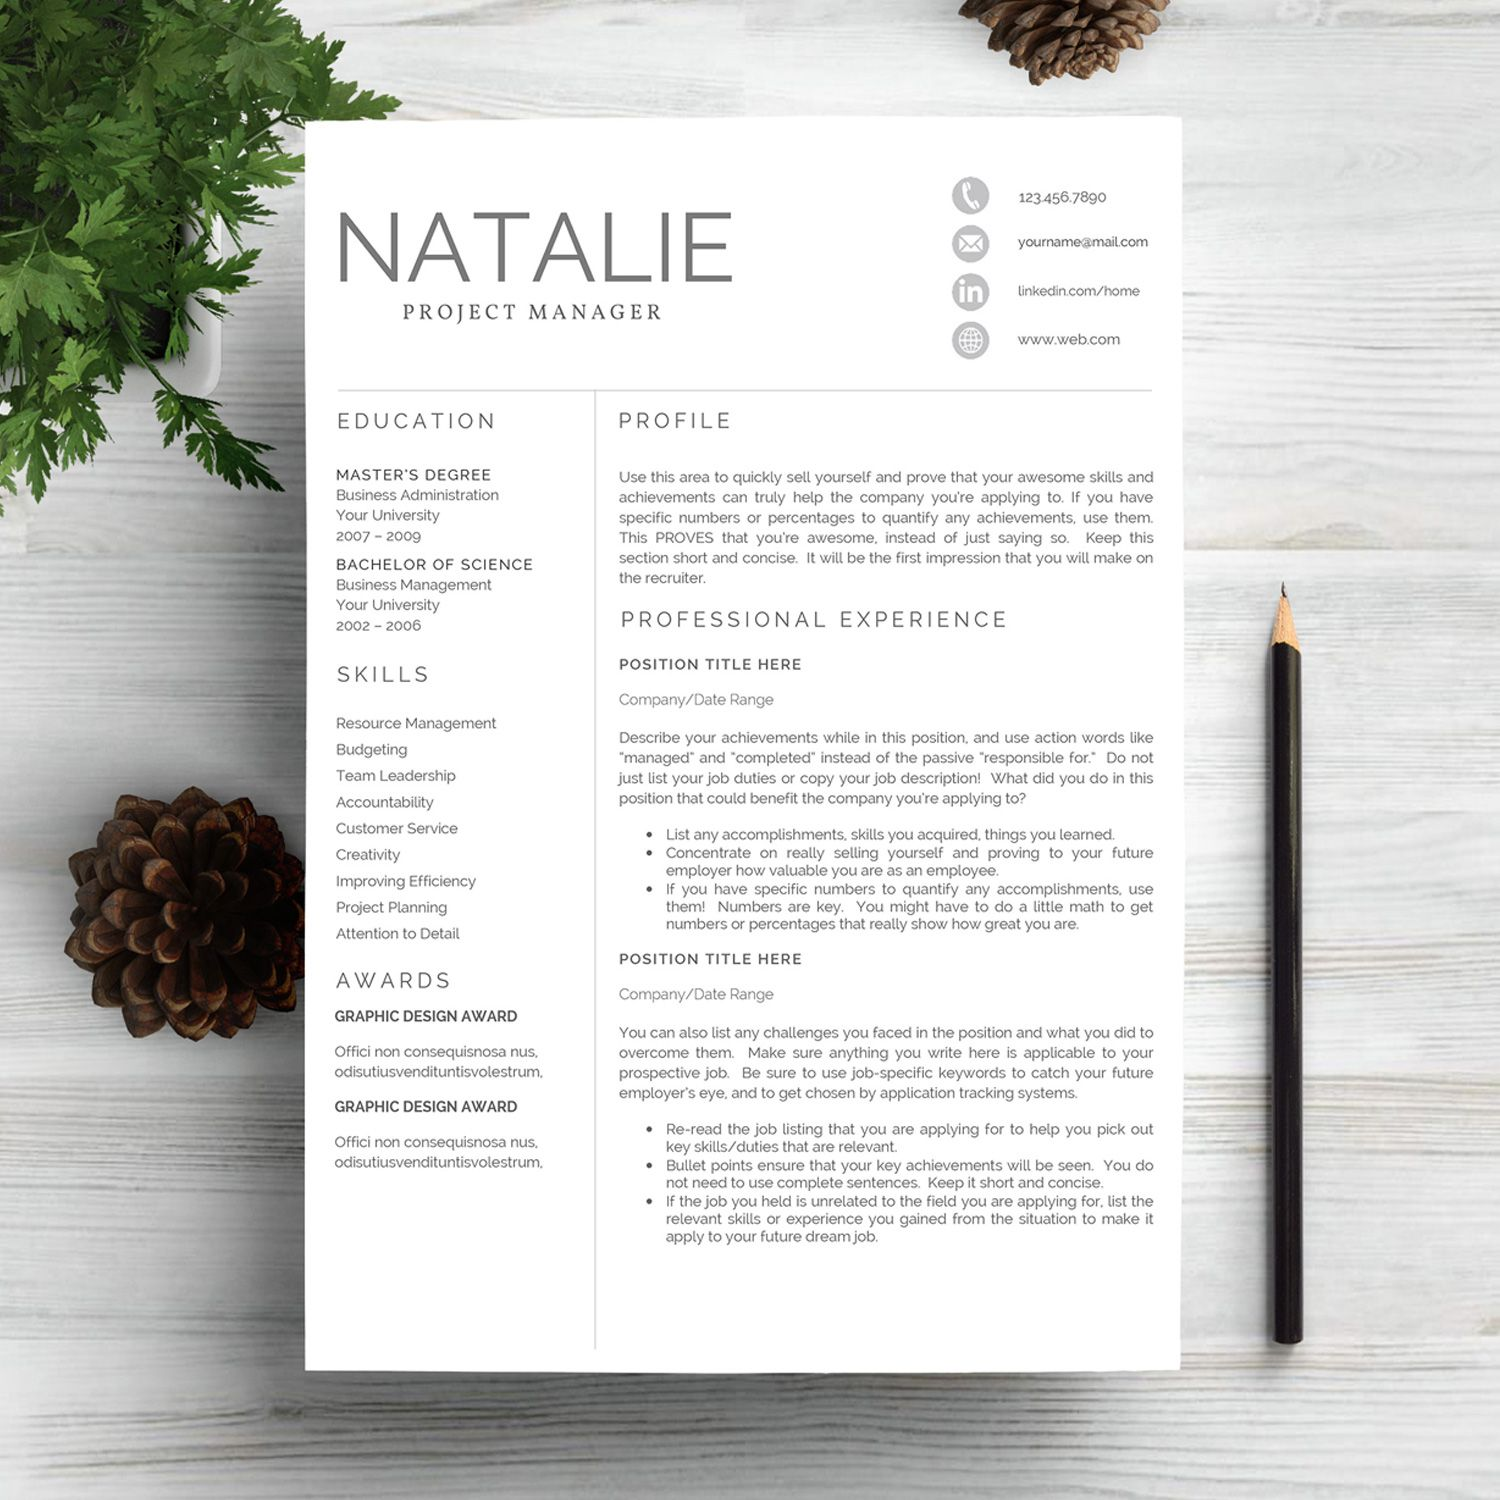 Professional Resume Template For Project Manager Resume Template